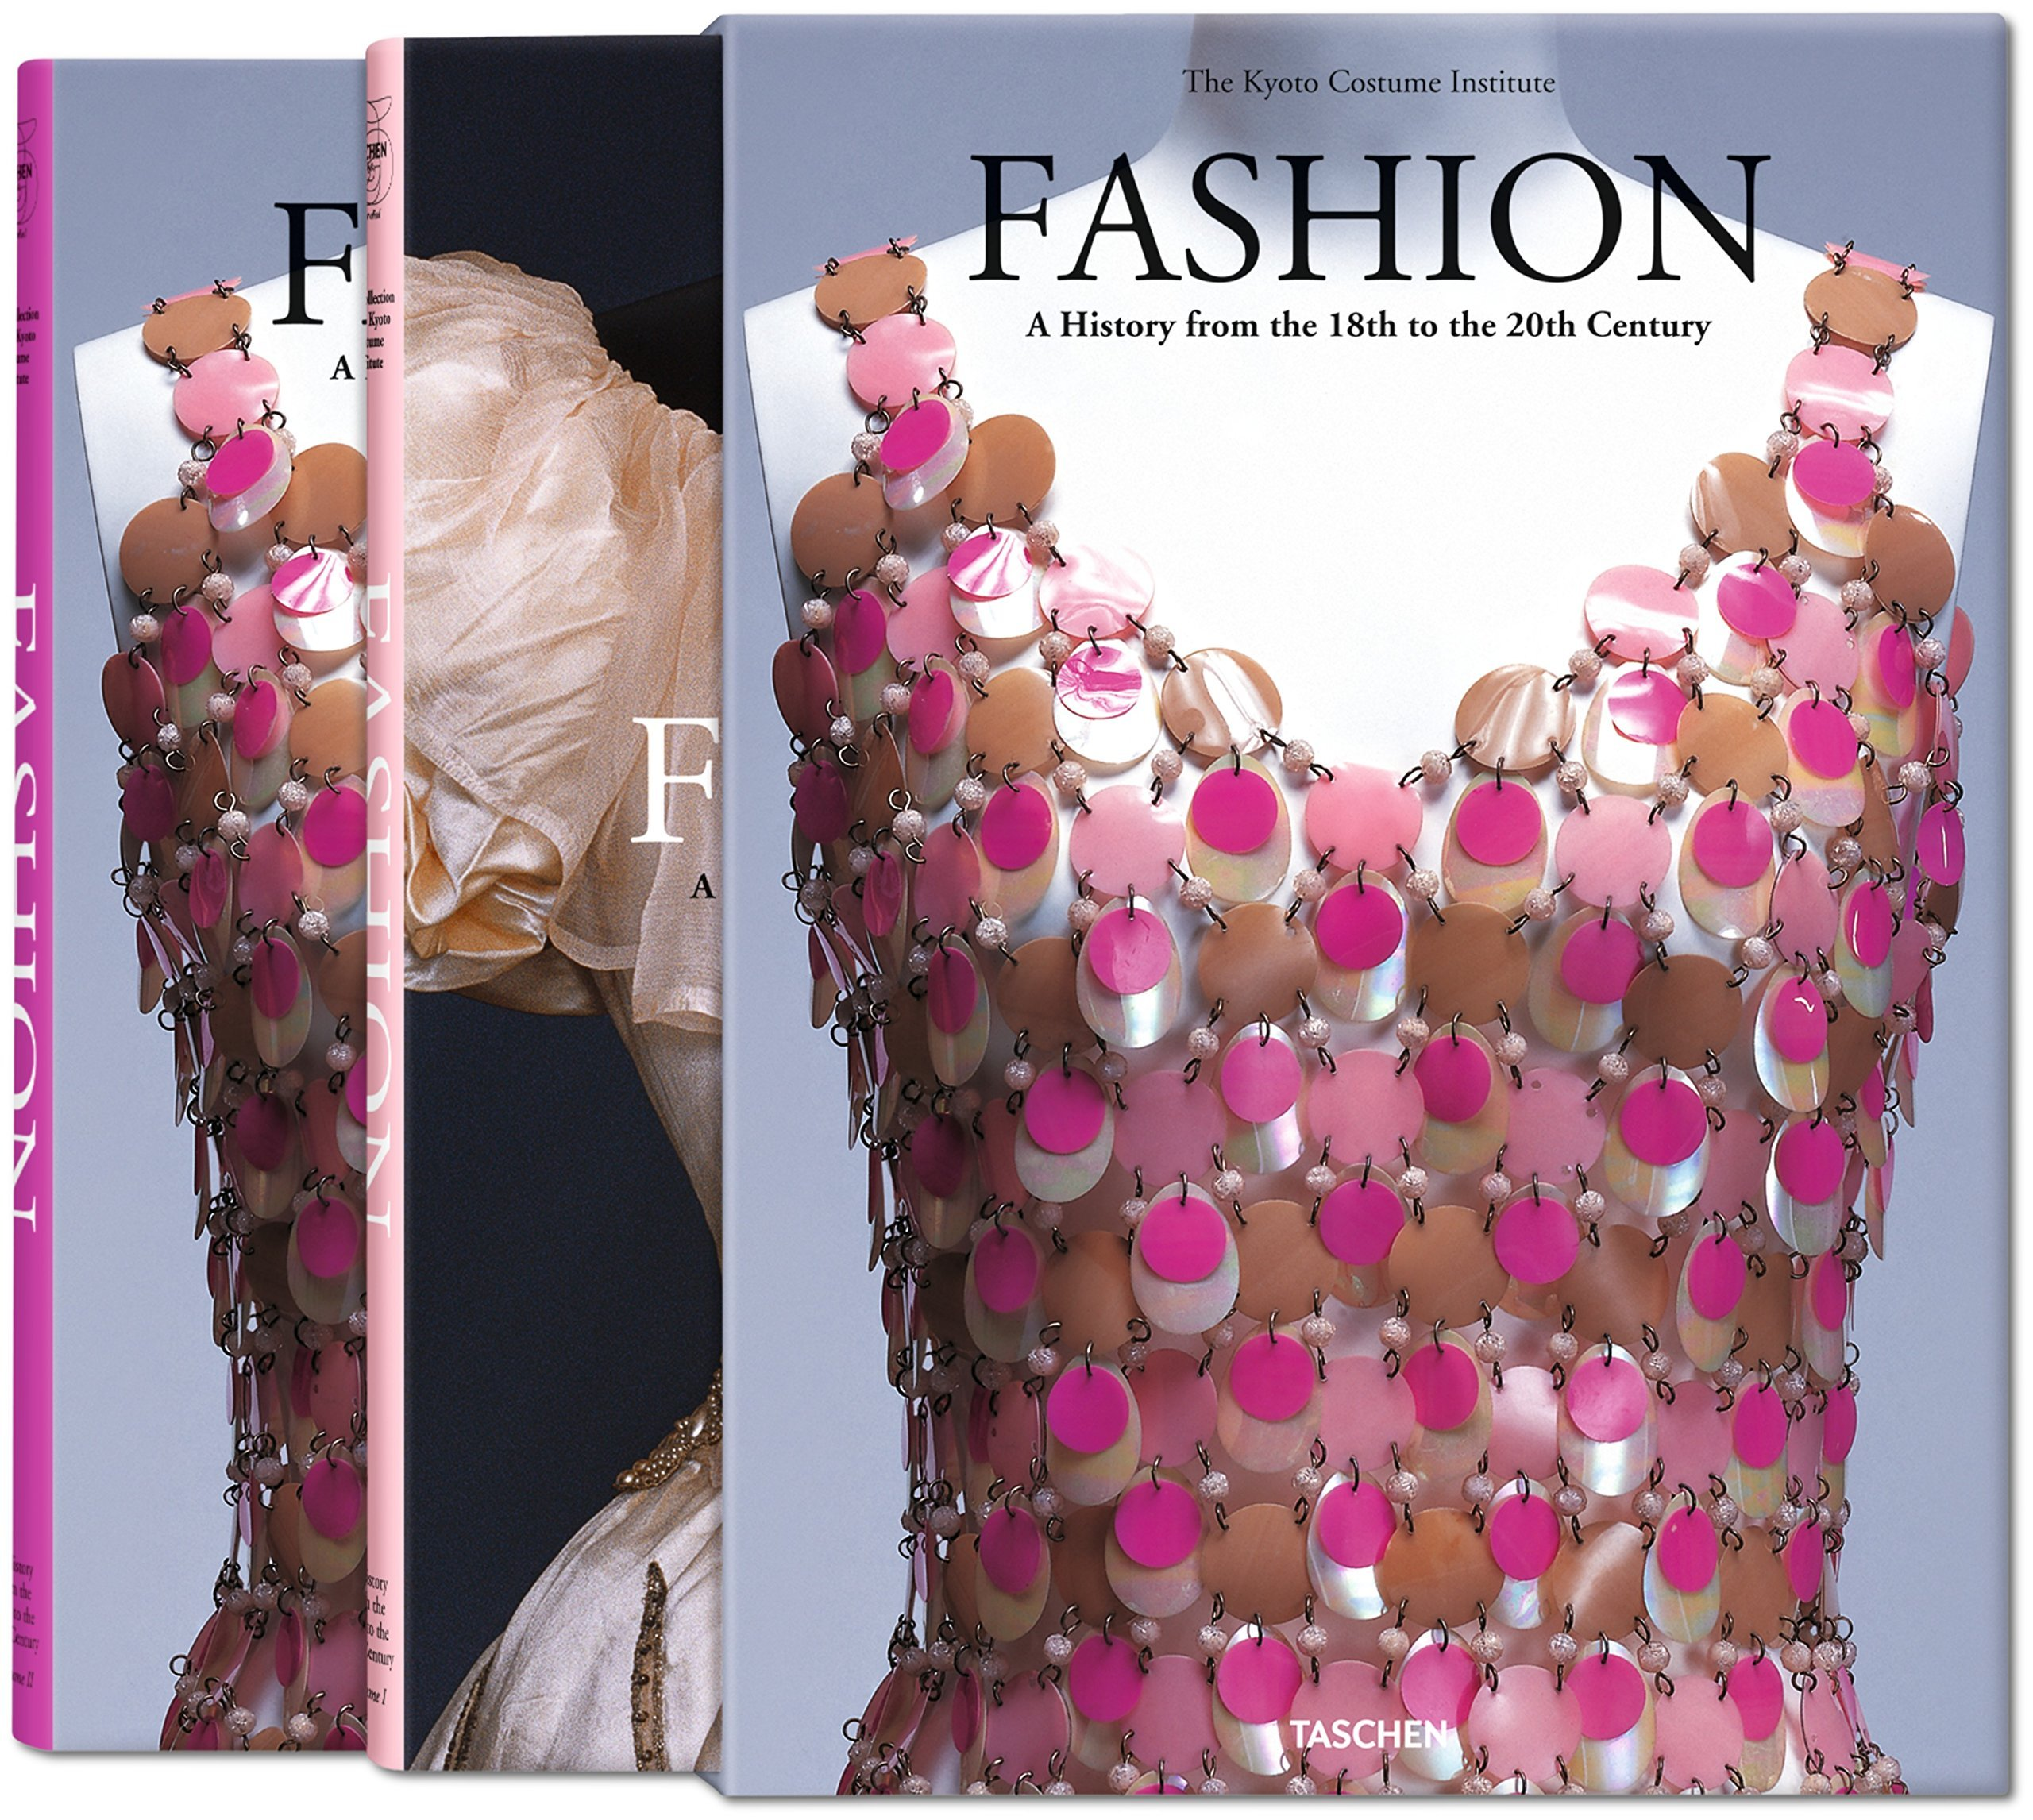 Review: Fashion: A History from the 18th to the 20th Century (2 Volume Set)